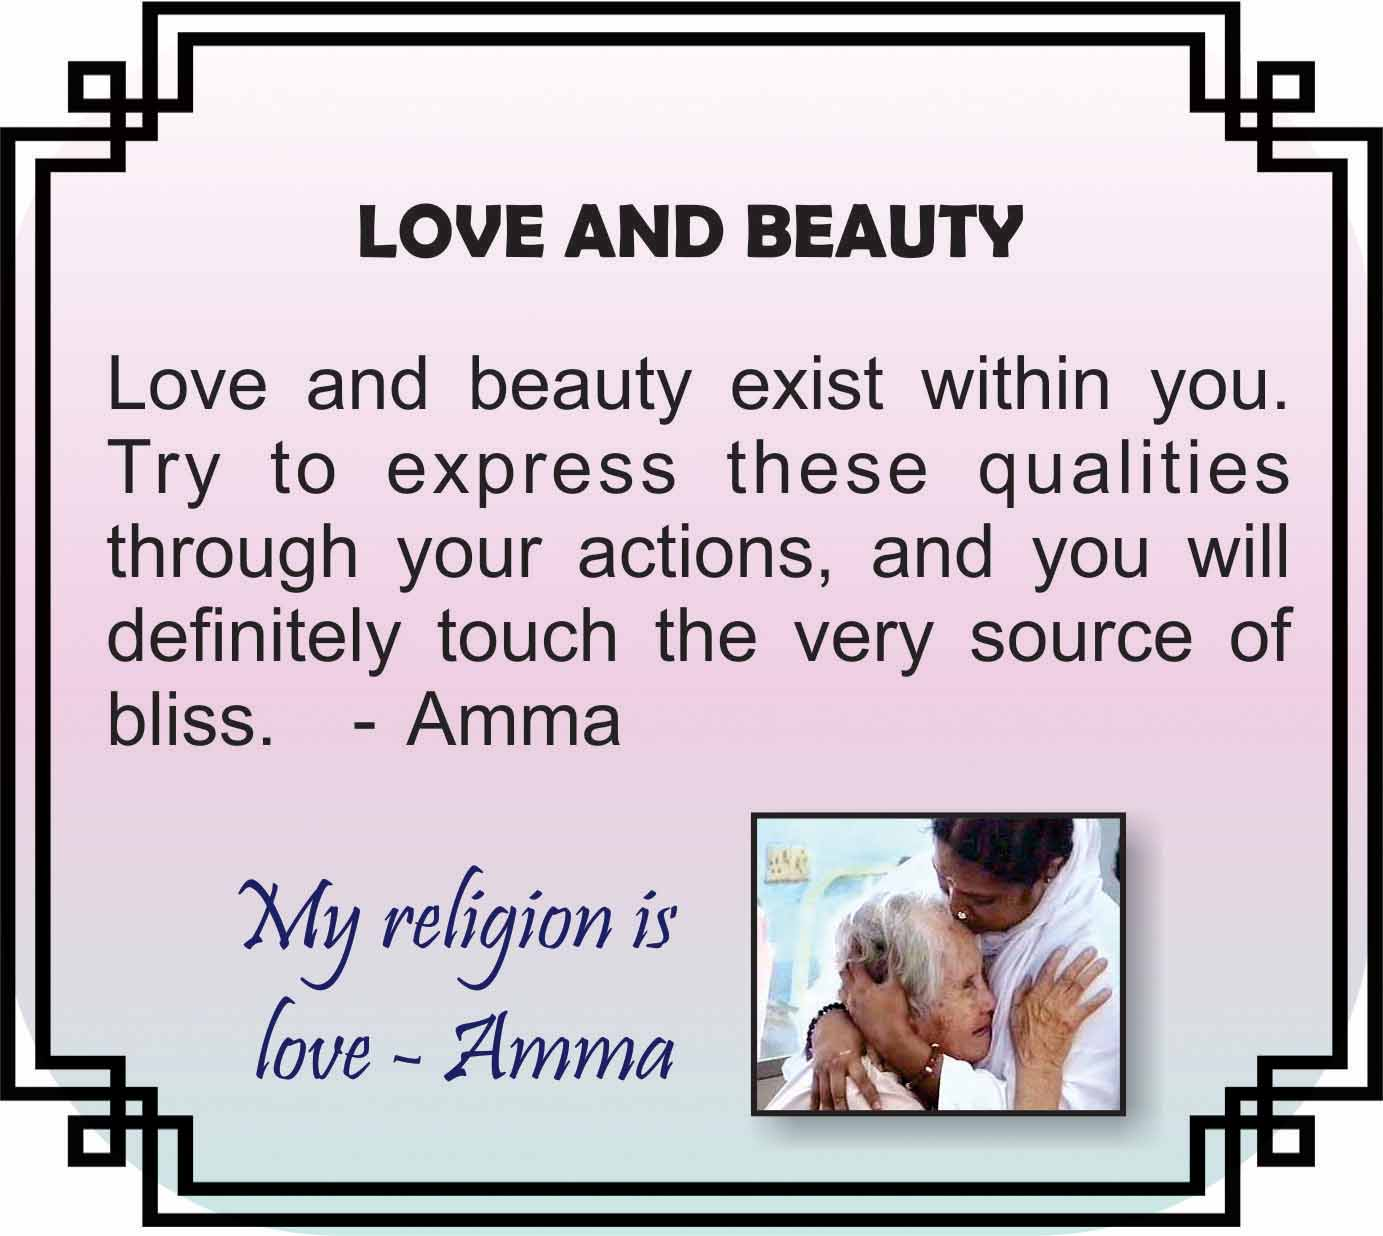 Amma love and beauty